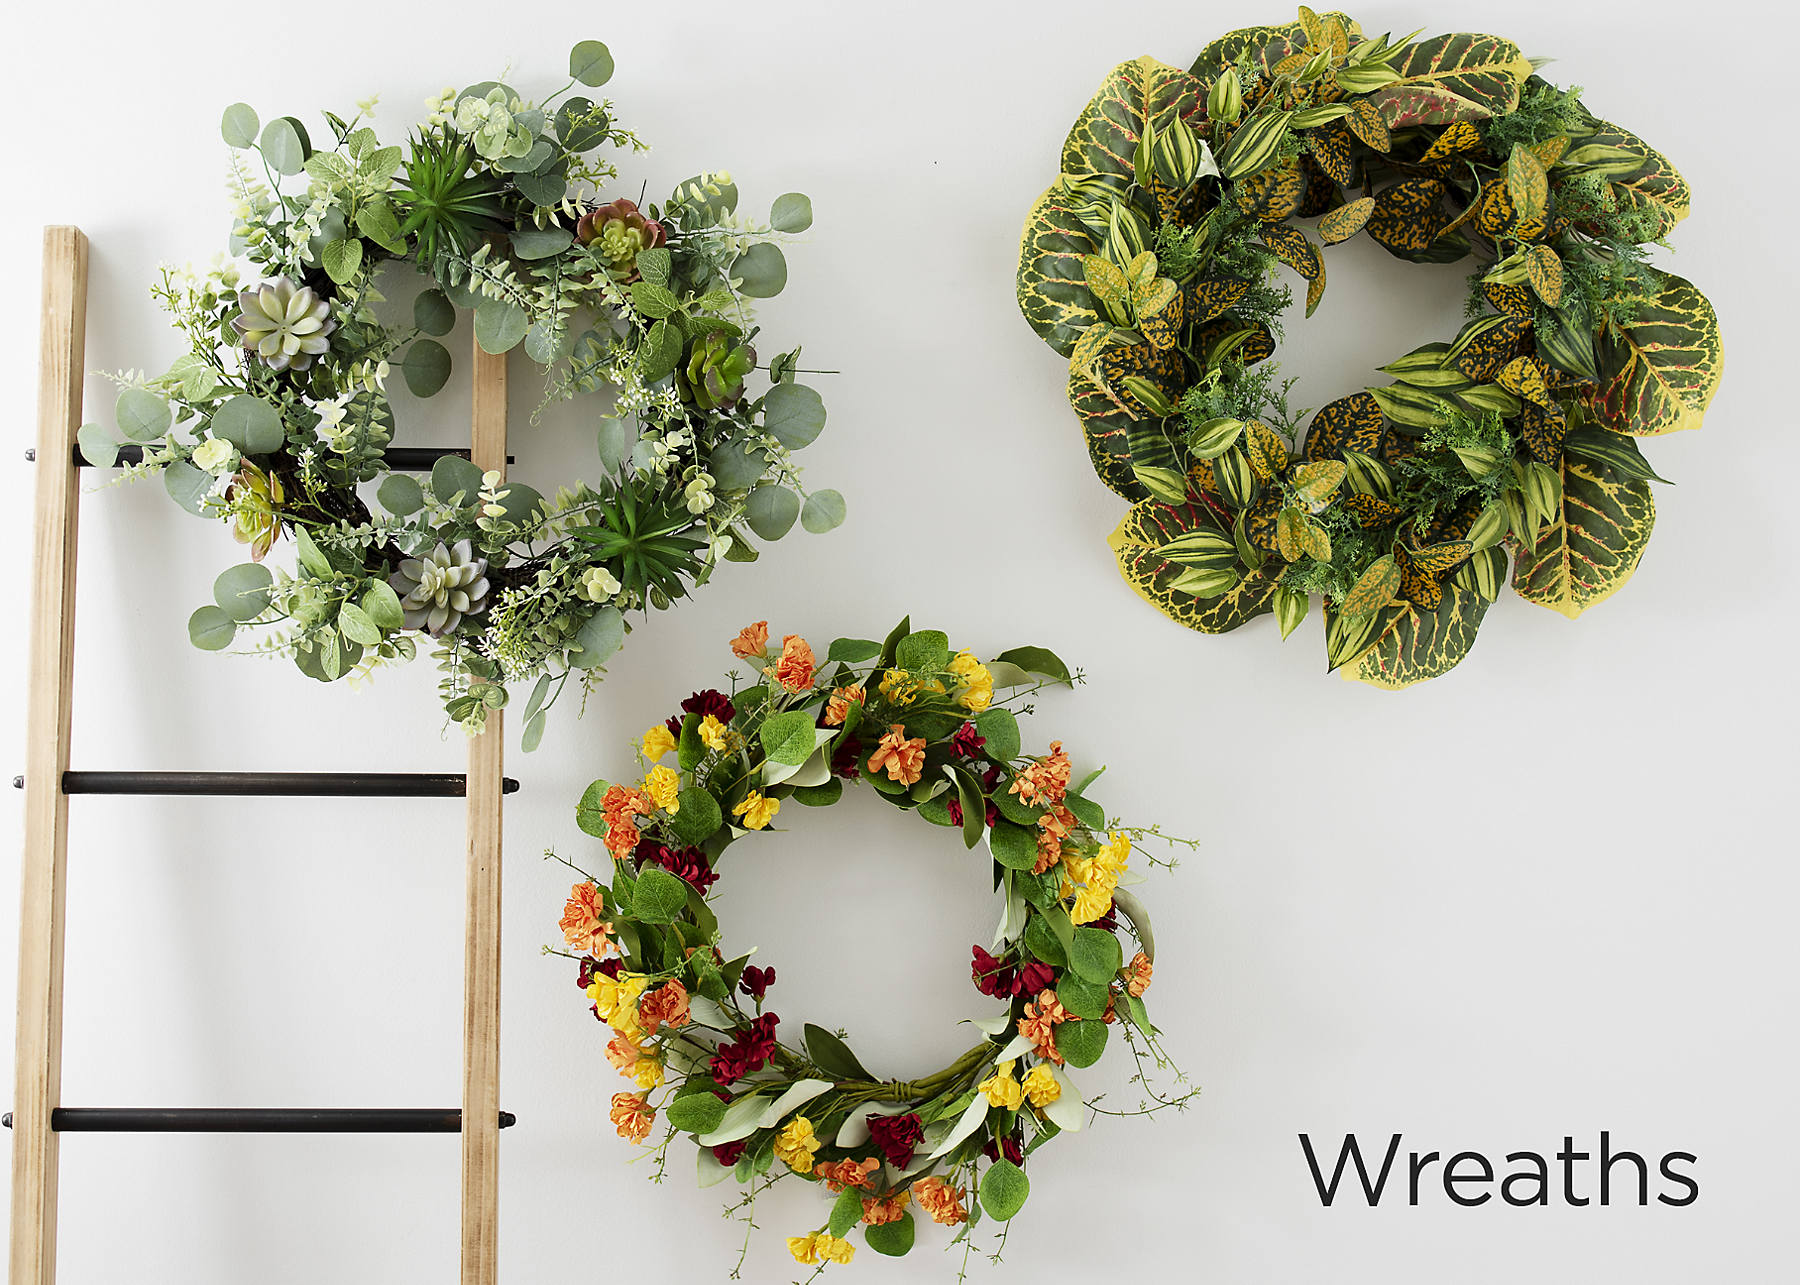 Wreaths Up to 35% Off with code